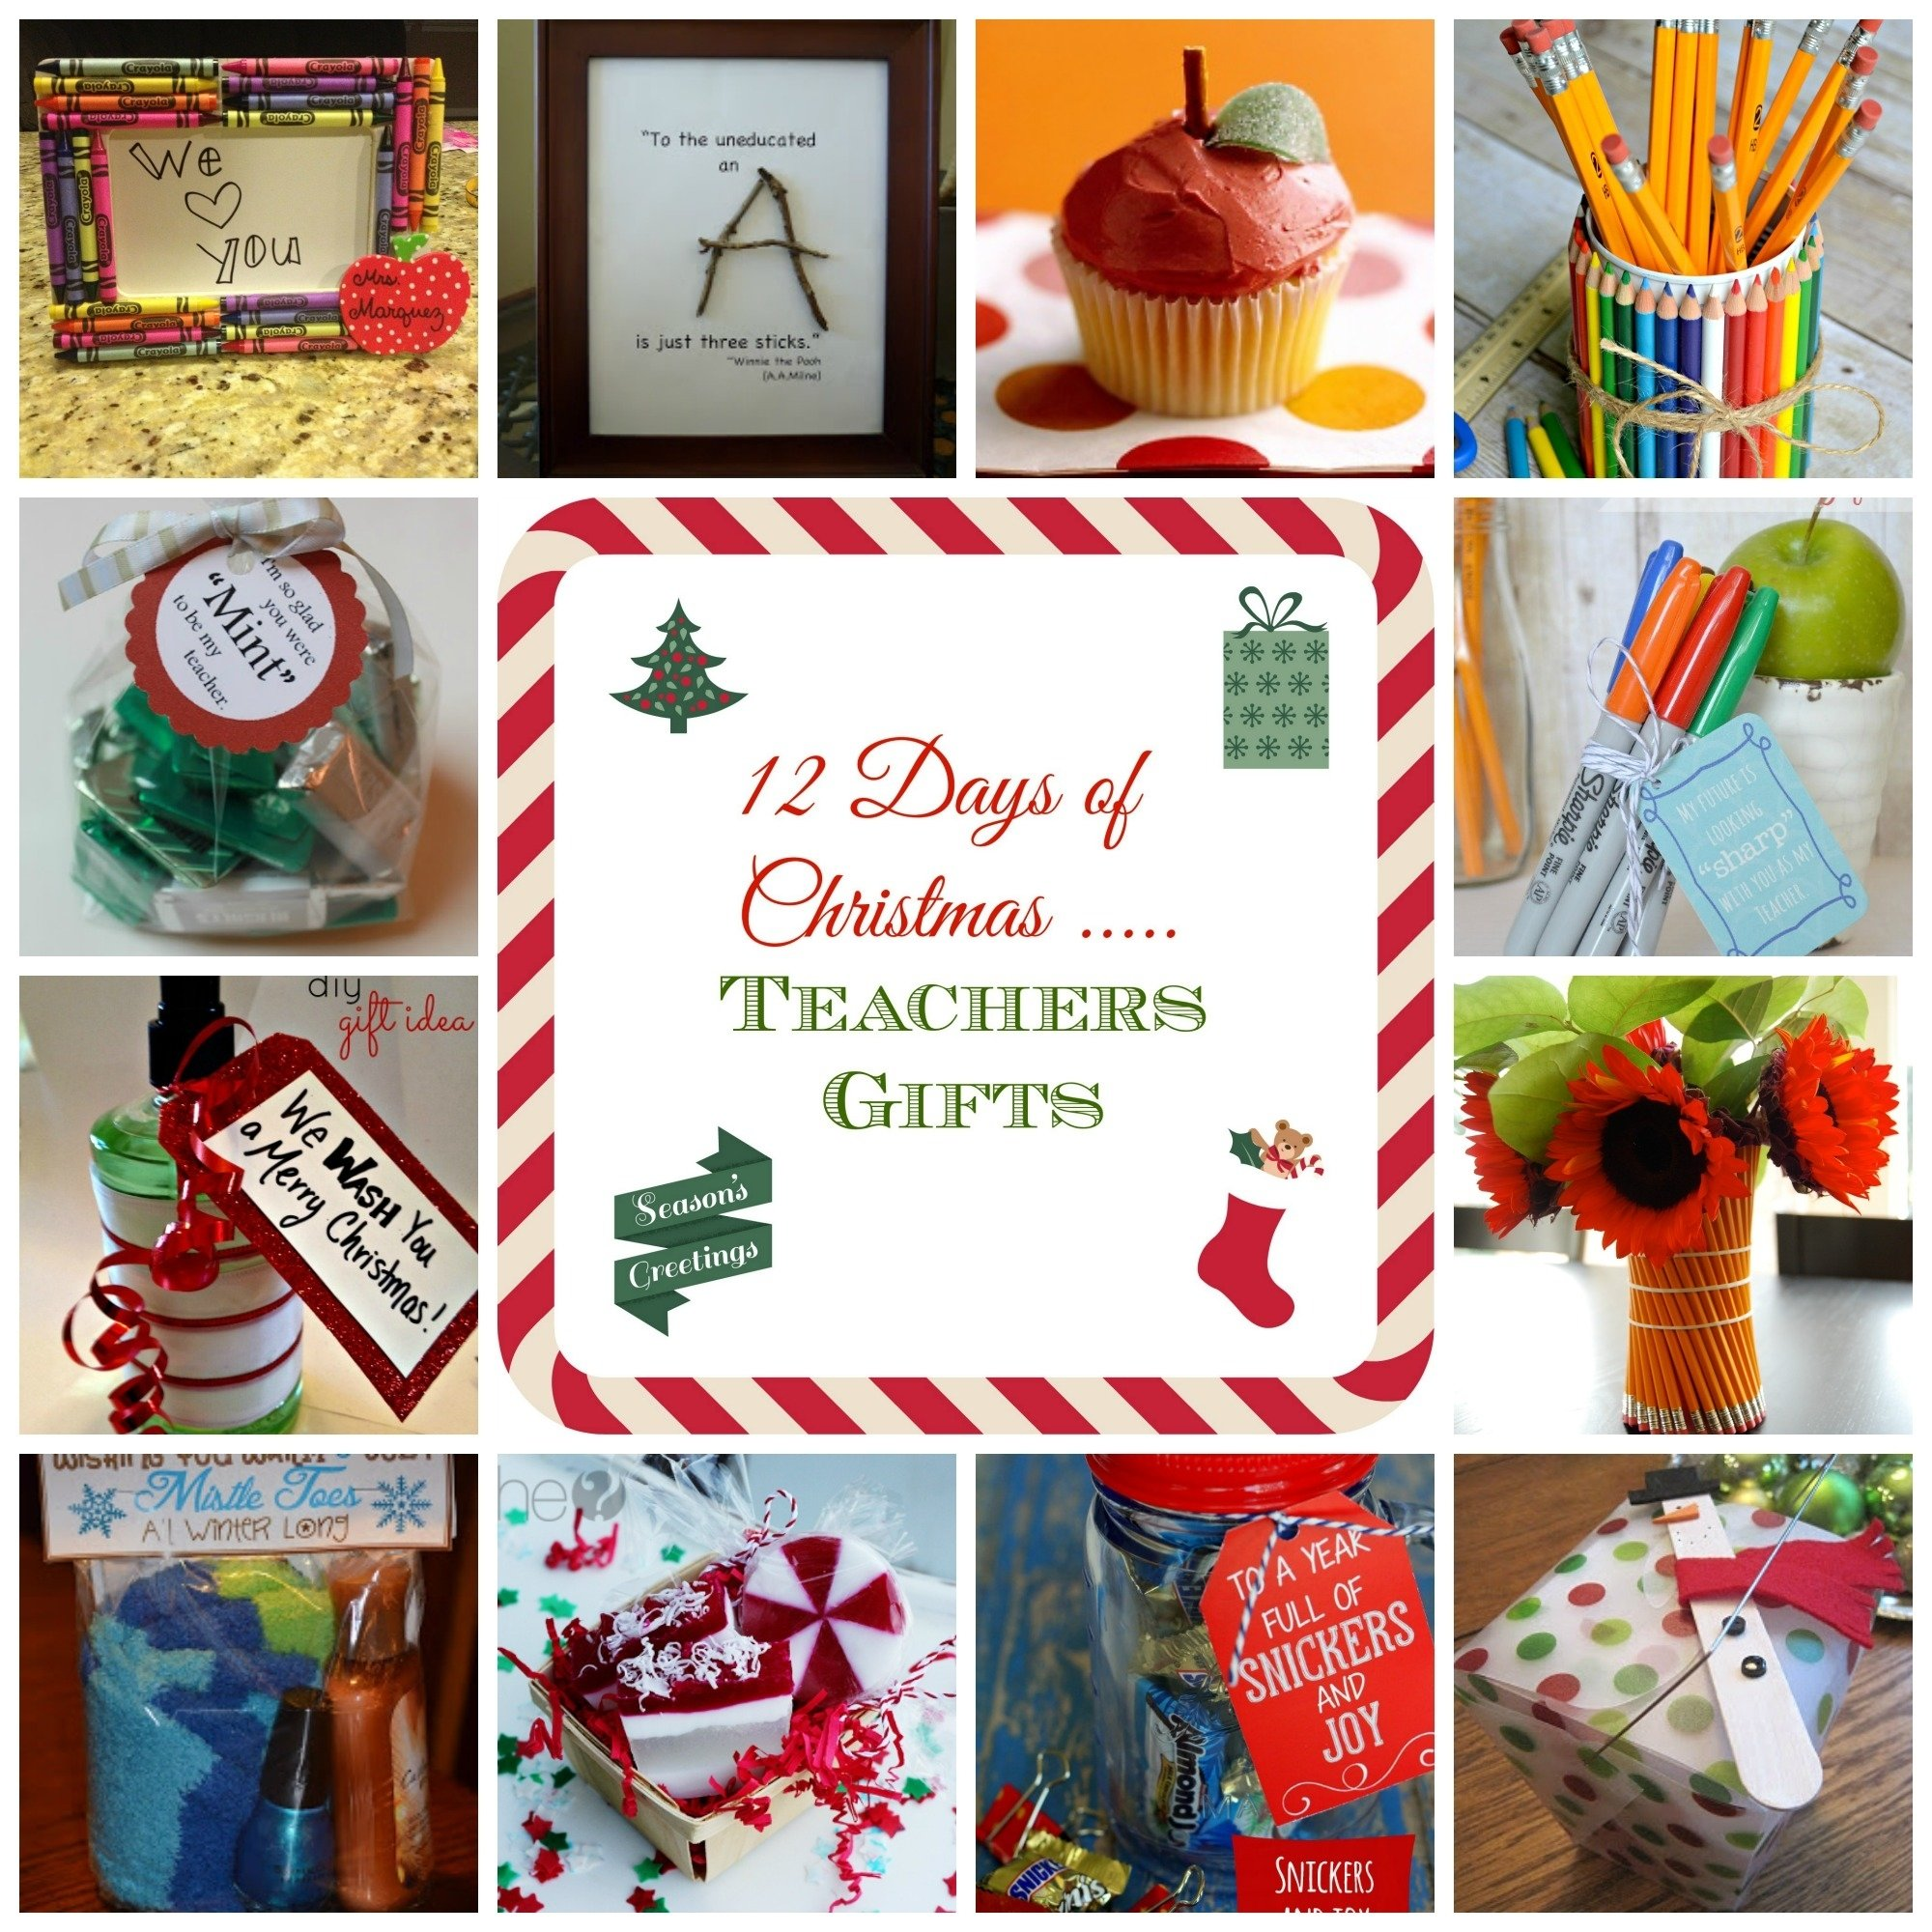 10 Most Popular Teacher Gifts Ideas For Christmas 12 days of christmas teacher gift ideas donnahup 2 2021